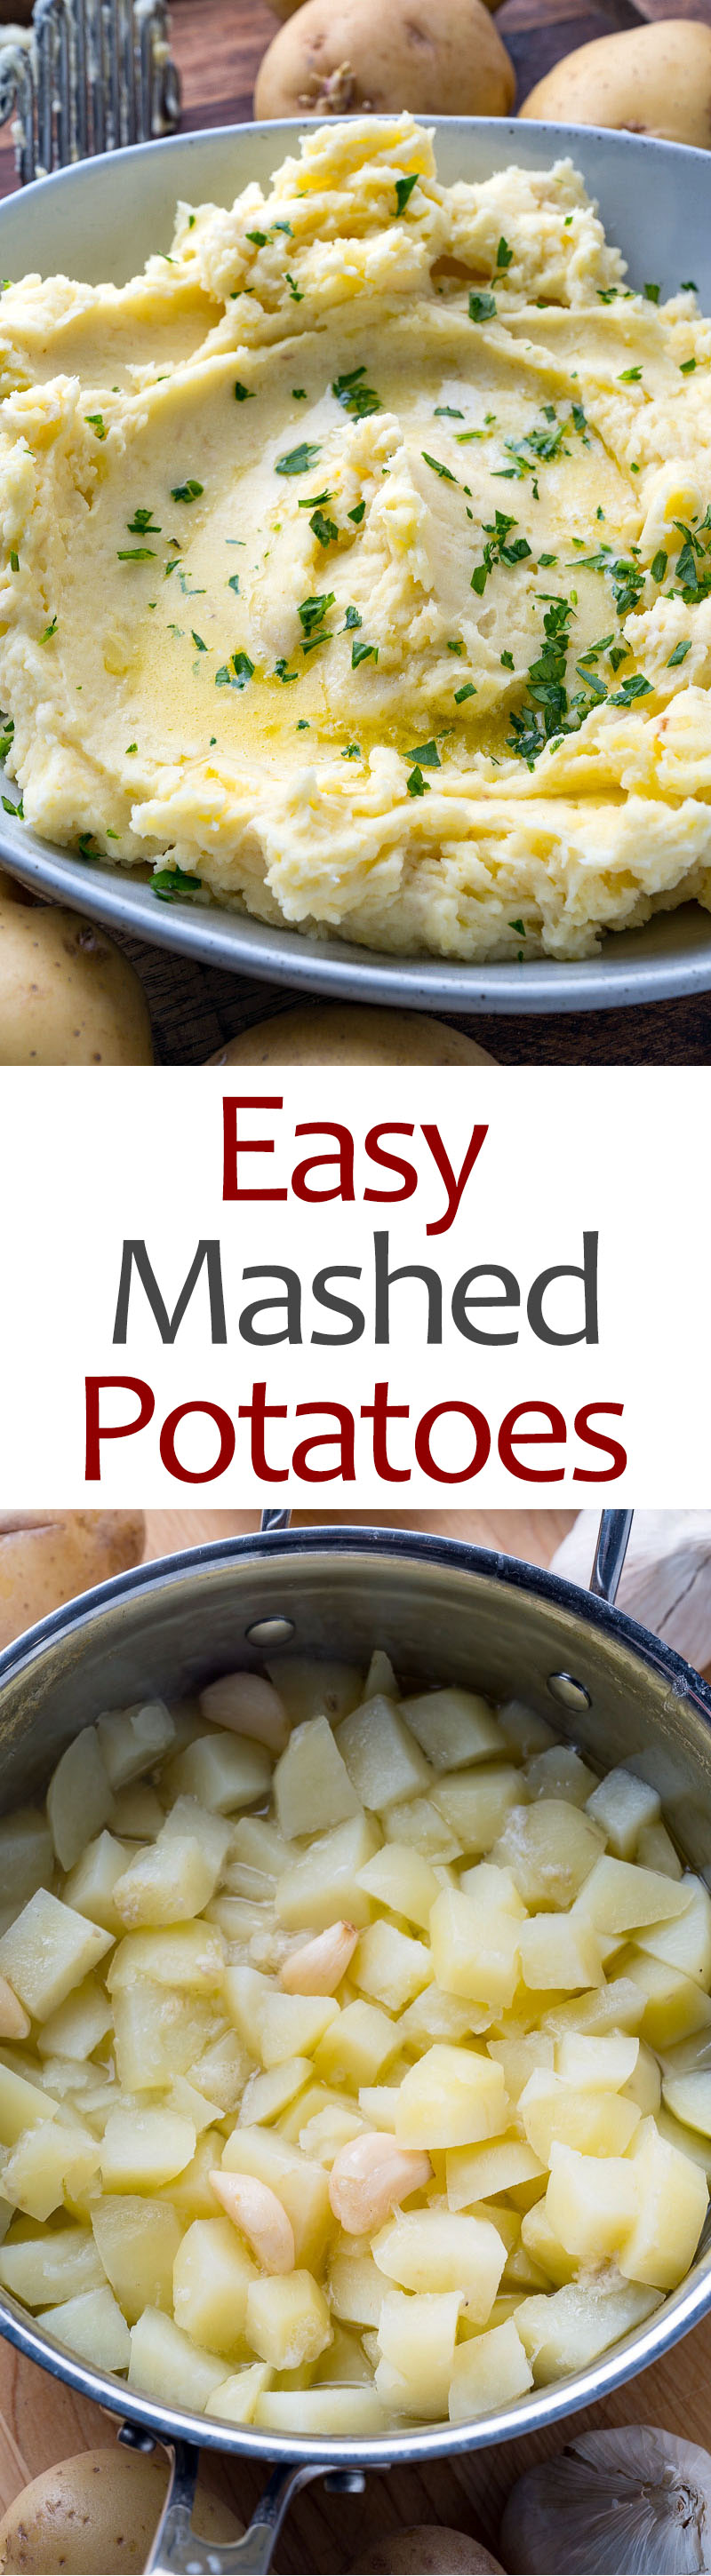 Easy Mashed Potatoes